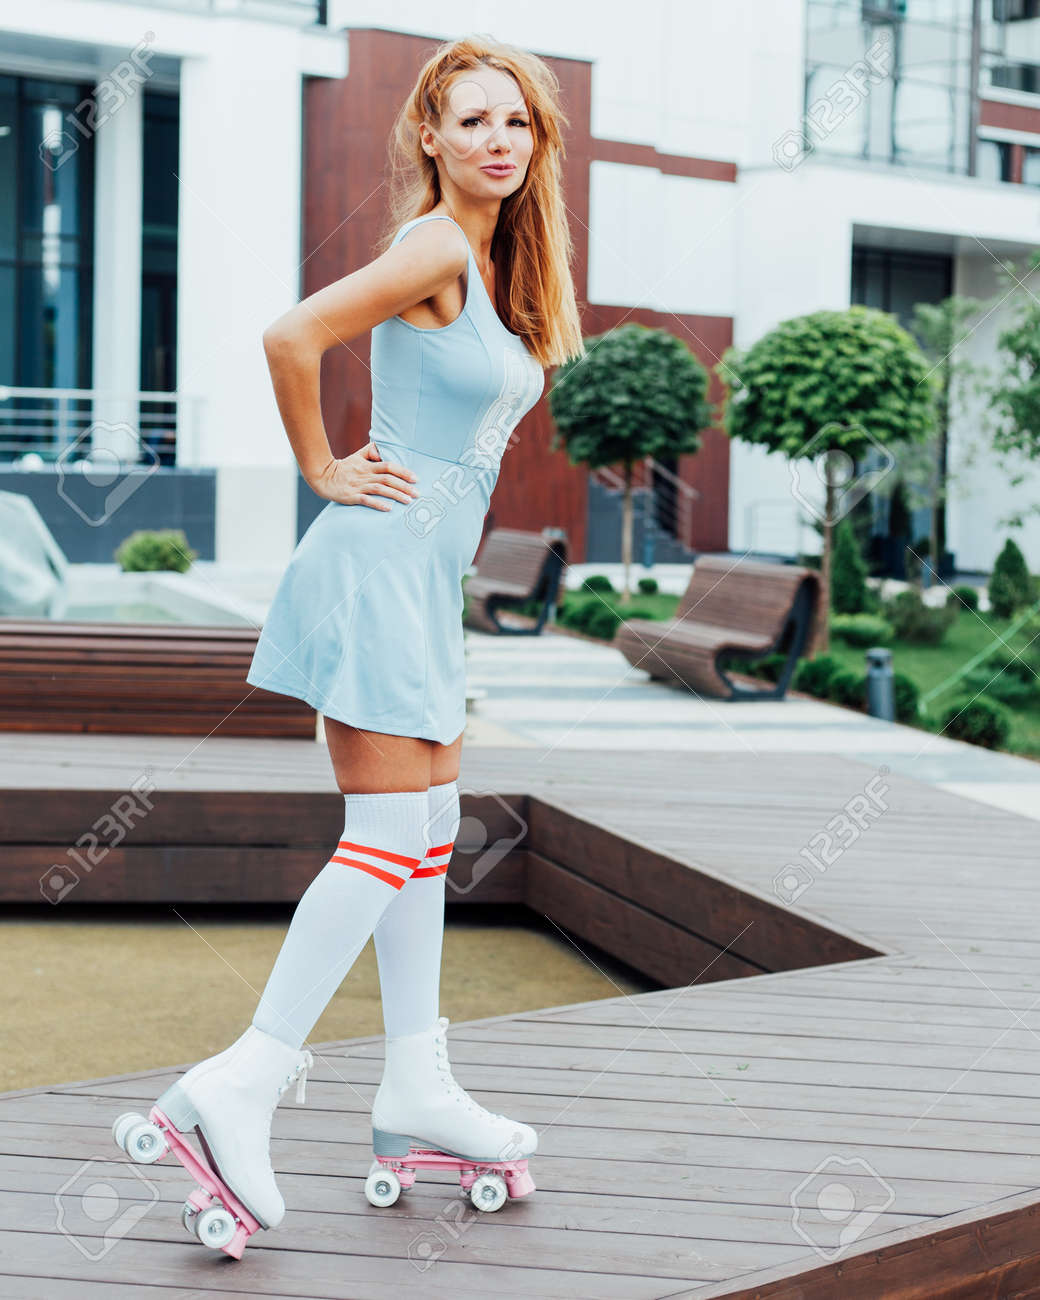 cb4d414270fb An incredible red-haired beauty is having fun outdoors in a trendy blue summer  dress